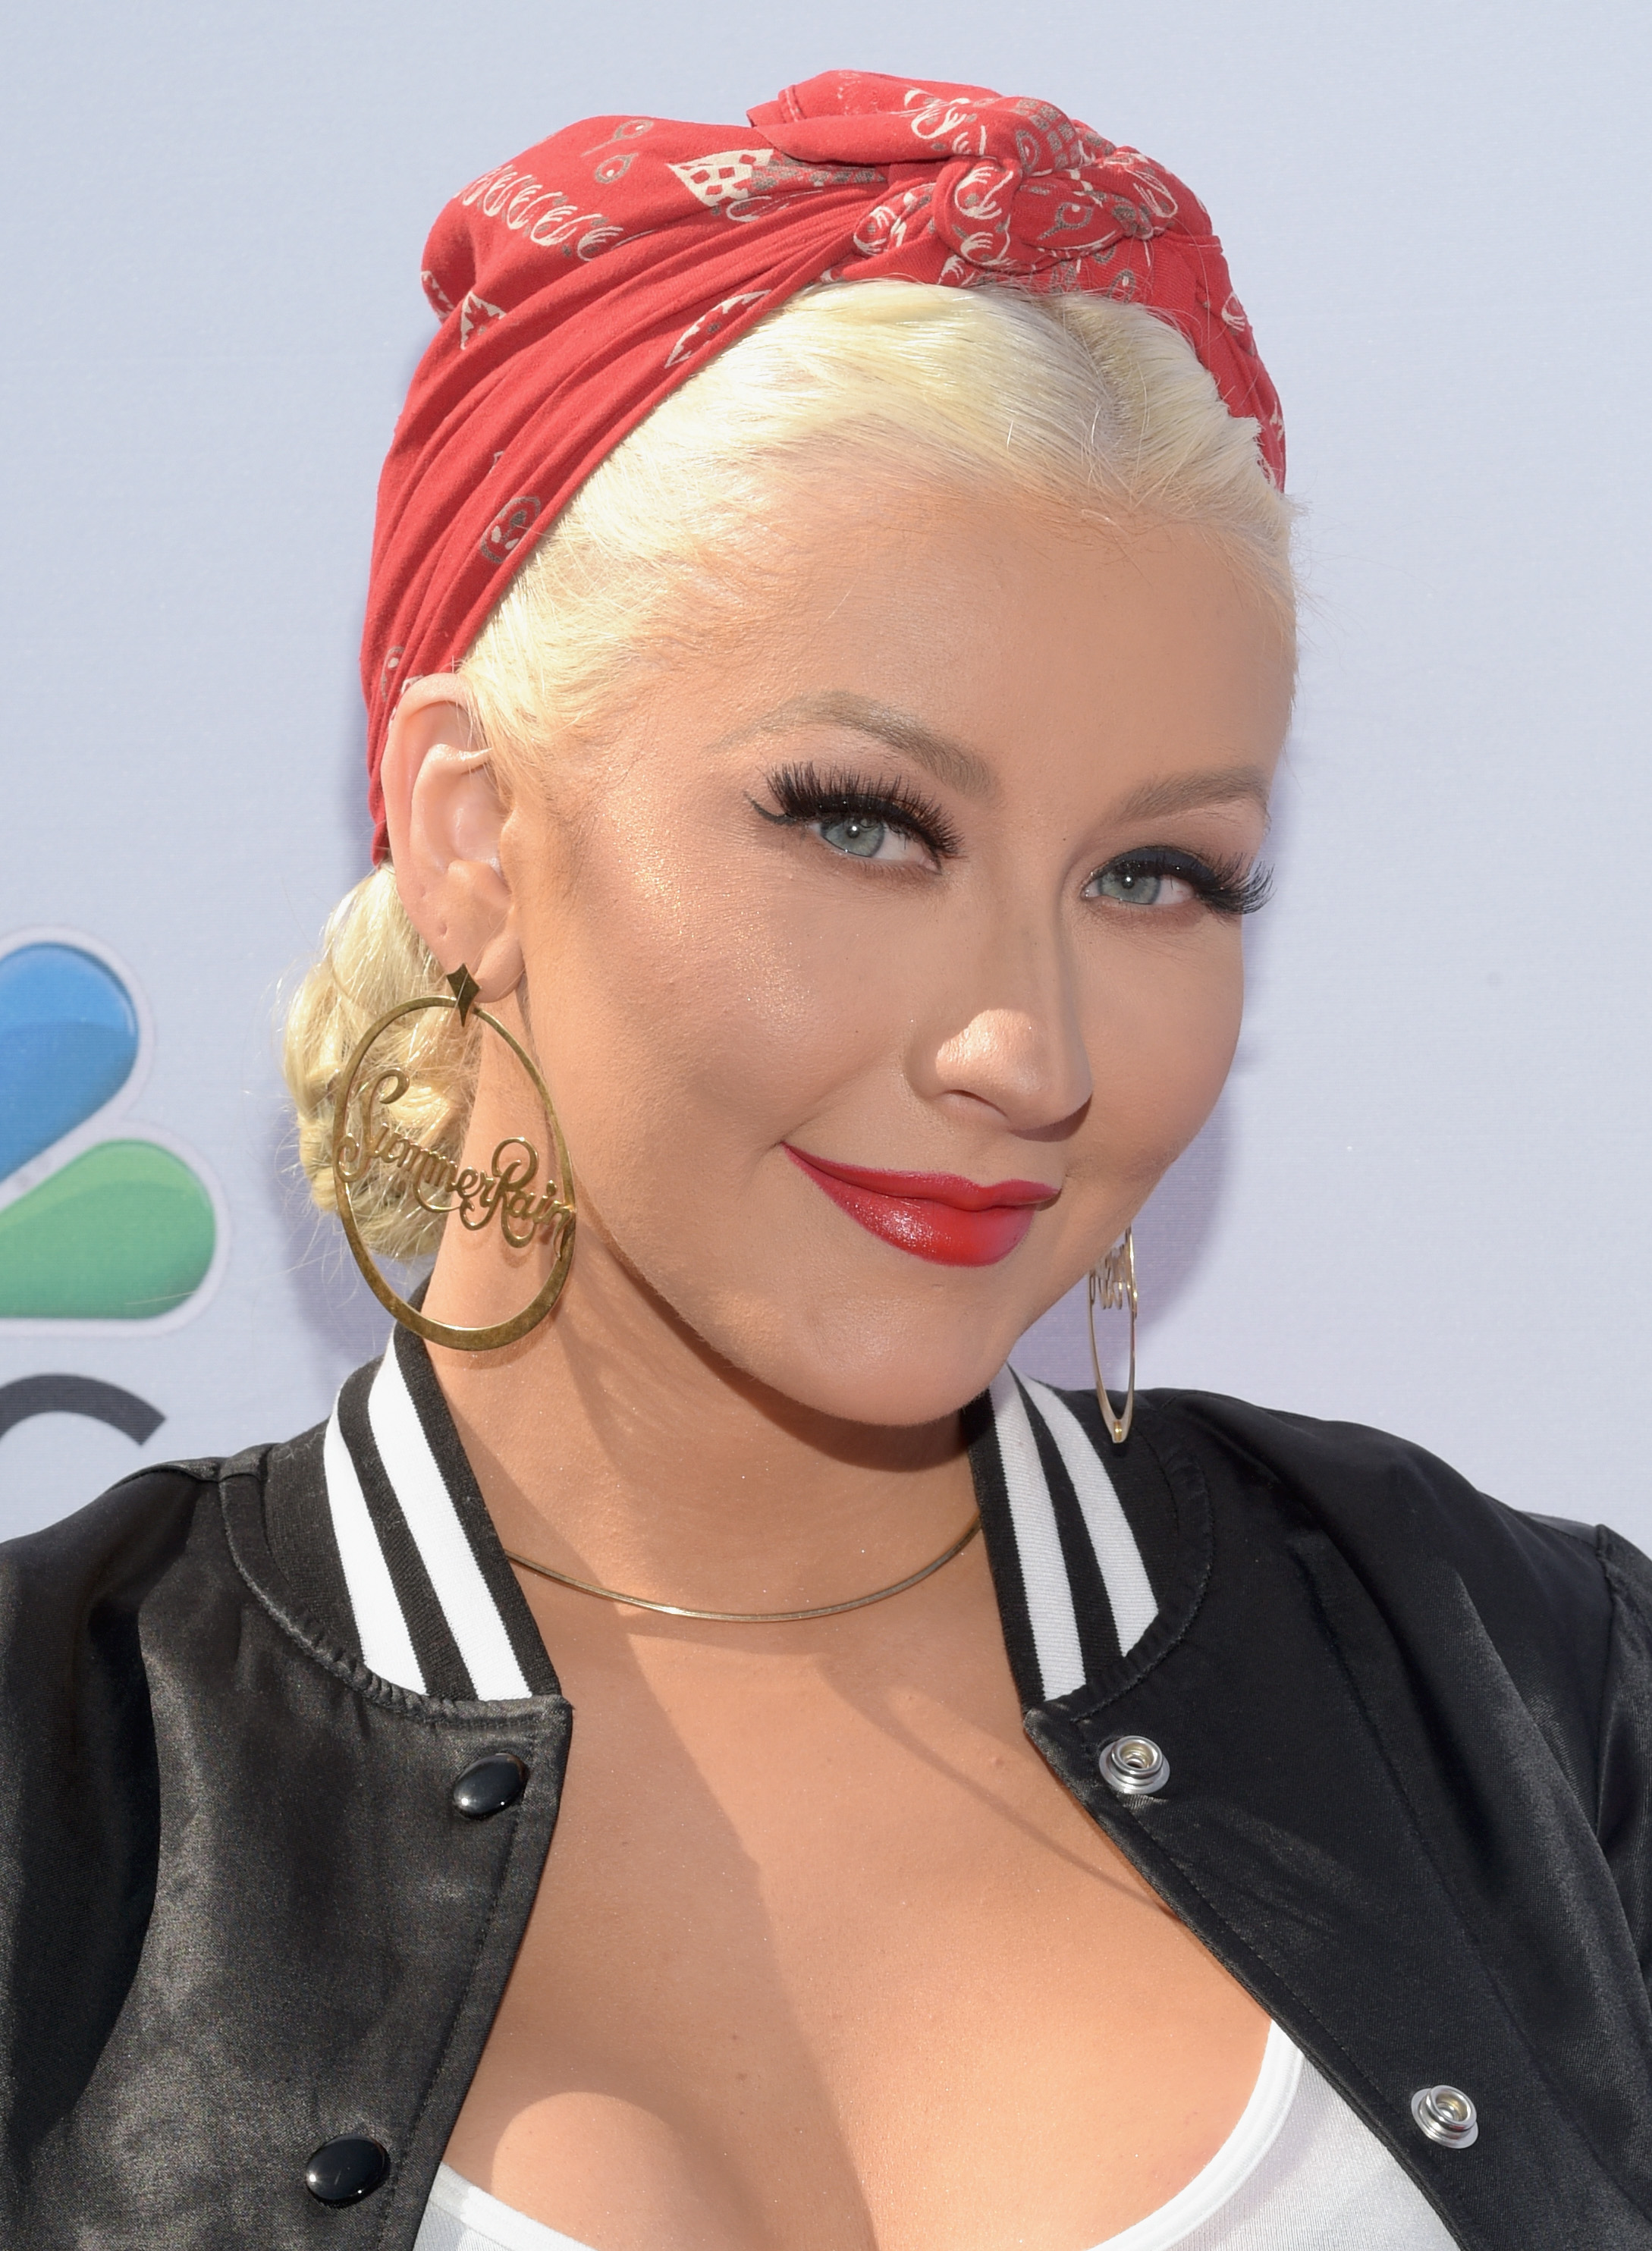 Christina Aguilera Just Dyed Her Hair Very, VeryRed recommend